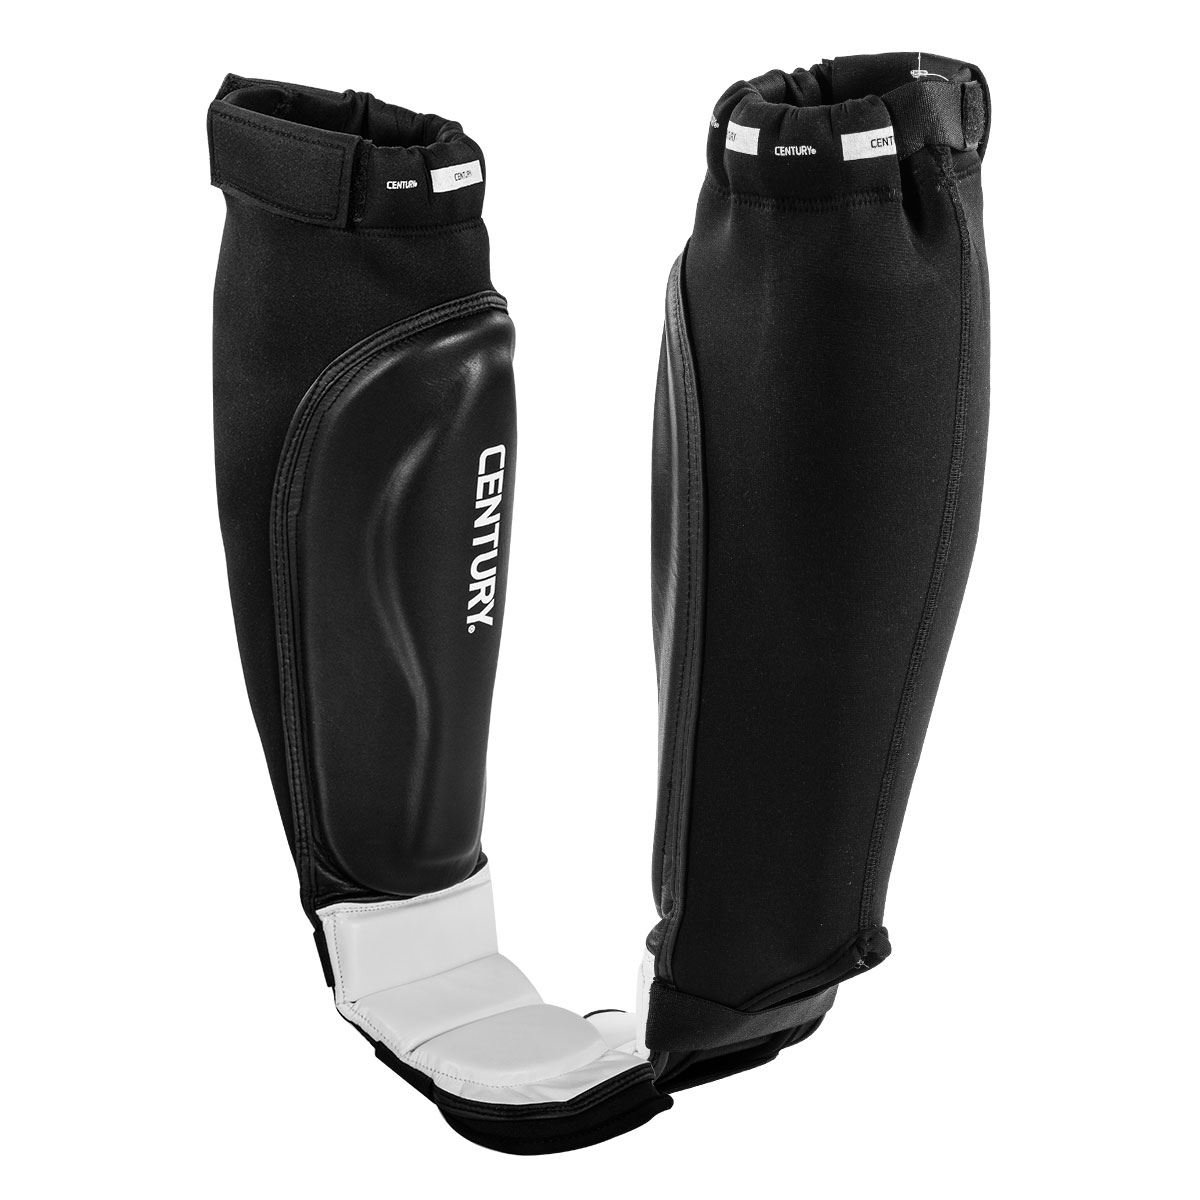 Century B01053BRGW CREED MMA Century Shin & Instep Shin Guards Adult Large B01053BRGW, キタヤマ イロハ:75a2fa7b --- capela.dominiotemporario.com